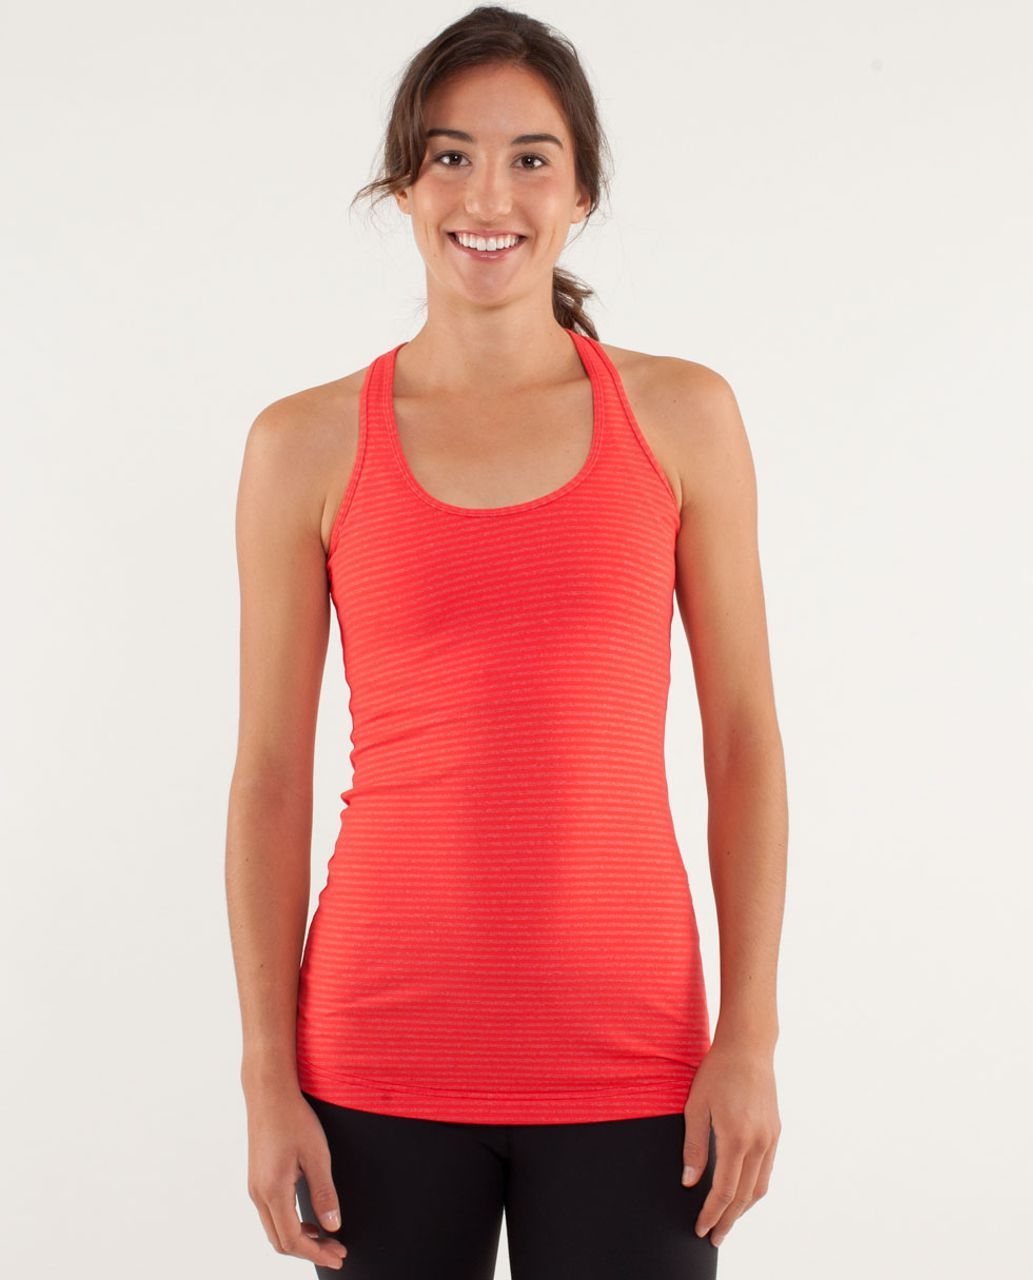 Lululemon Cool Racerback - Slope Stripe Love Red Heathered Fiery Red